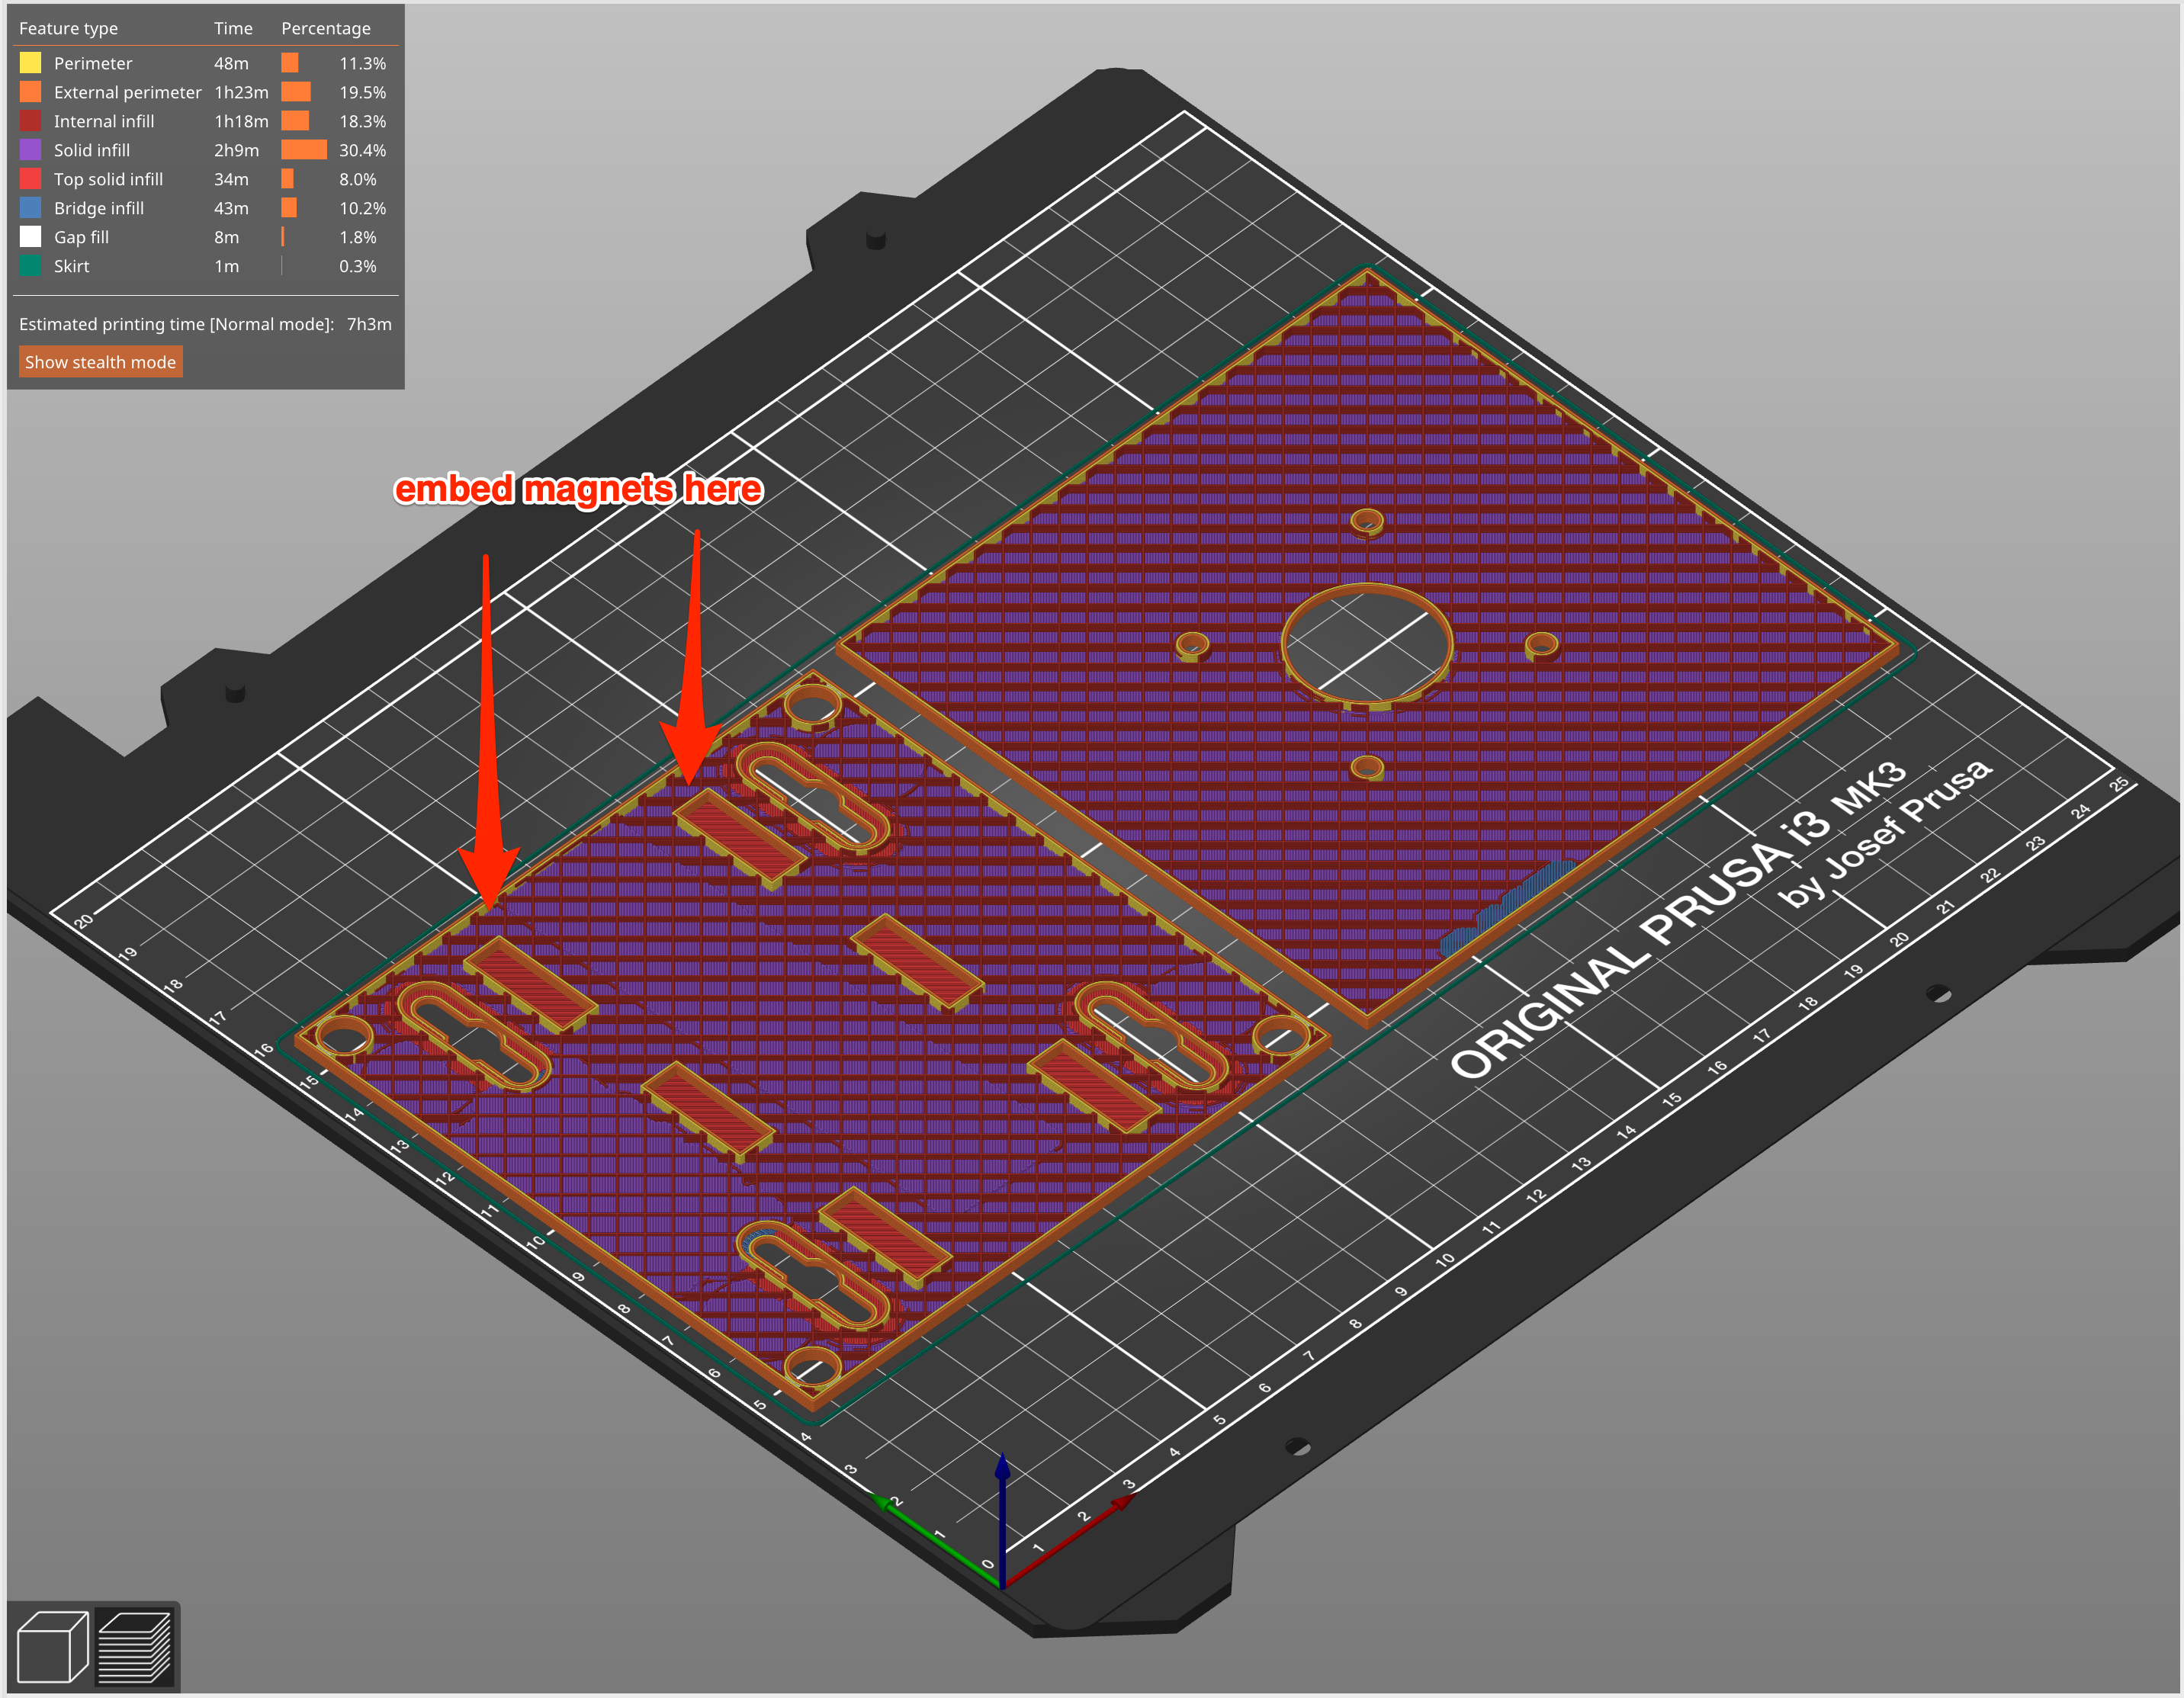 Screenshot showing 3D printed parts arranged on slicing software with annotation pointing out when to insert optional magnets.